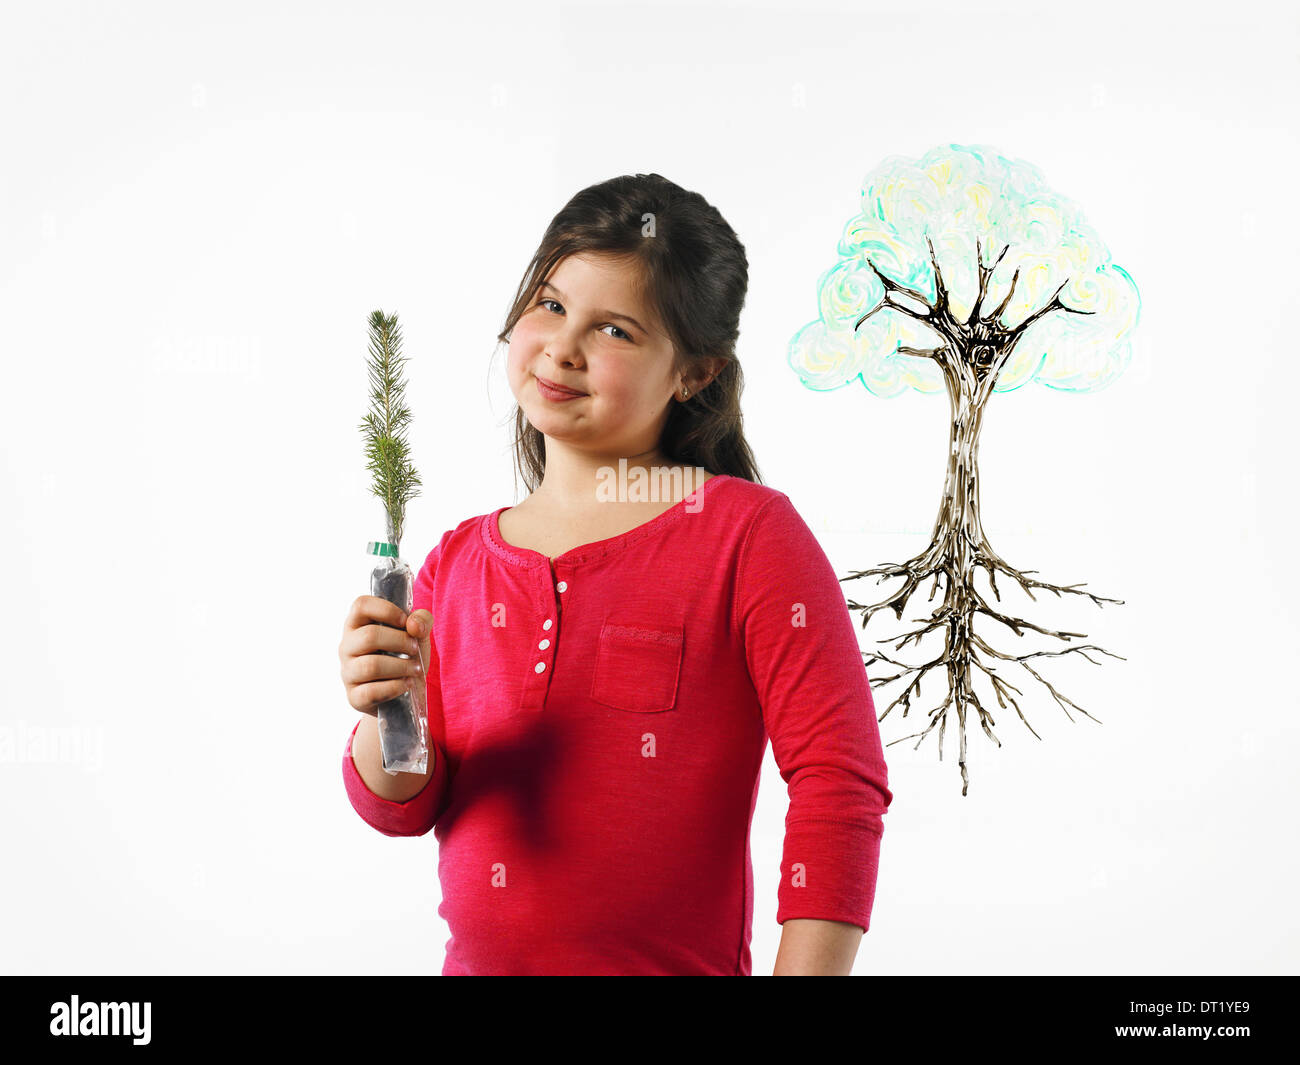 A young girl holding a small evergreen seedling An illustration of a plant with roots drawn on a clear surface - Stock Image